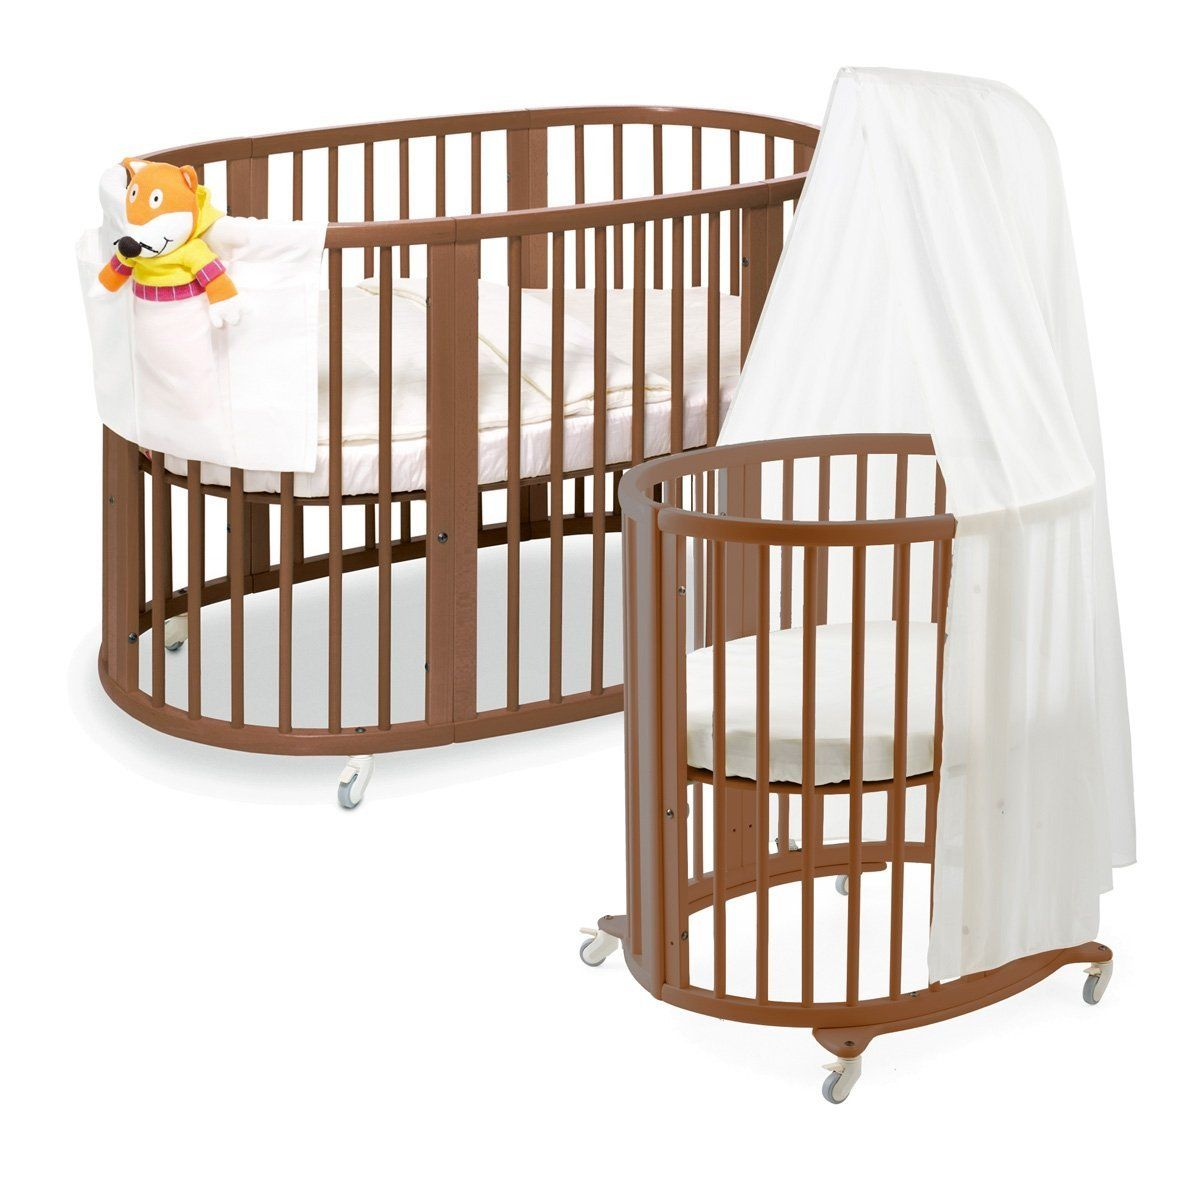 Awesome Oval Baby Crib Ideas For Home Design And Baby Round Baby